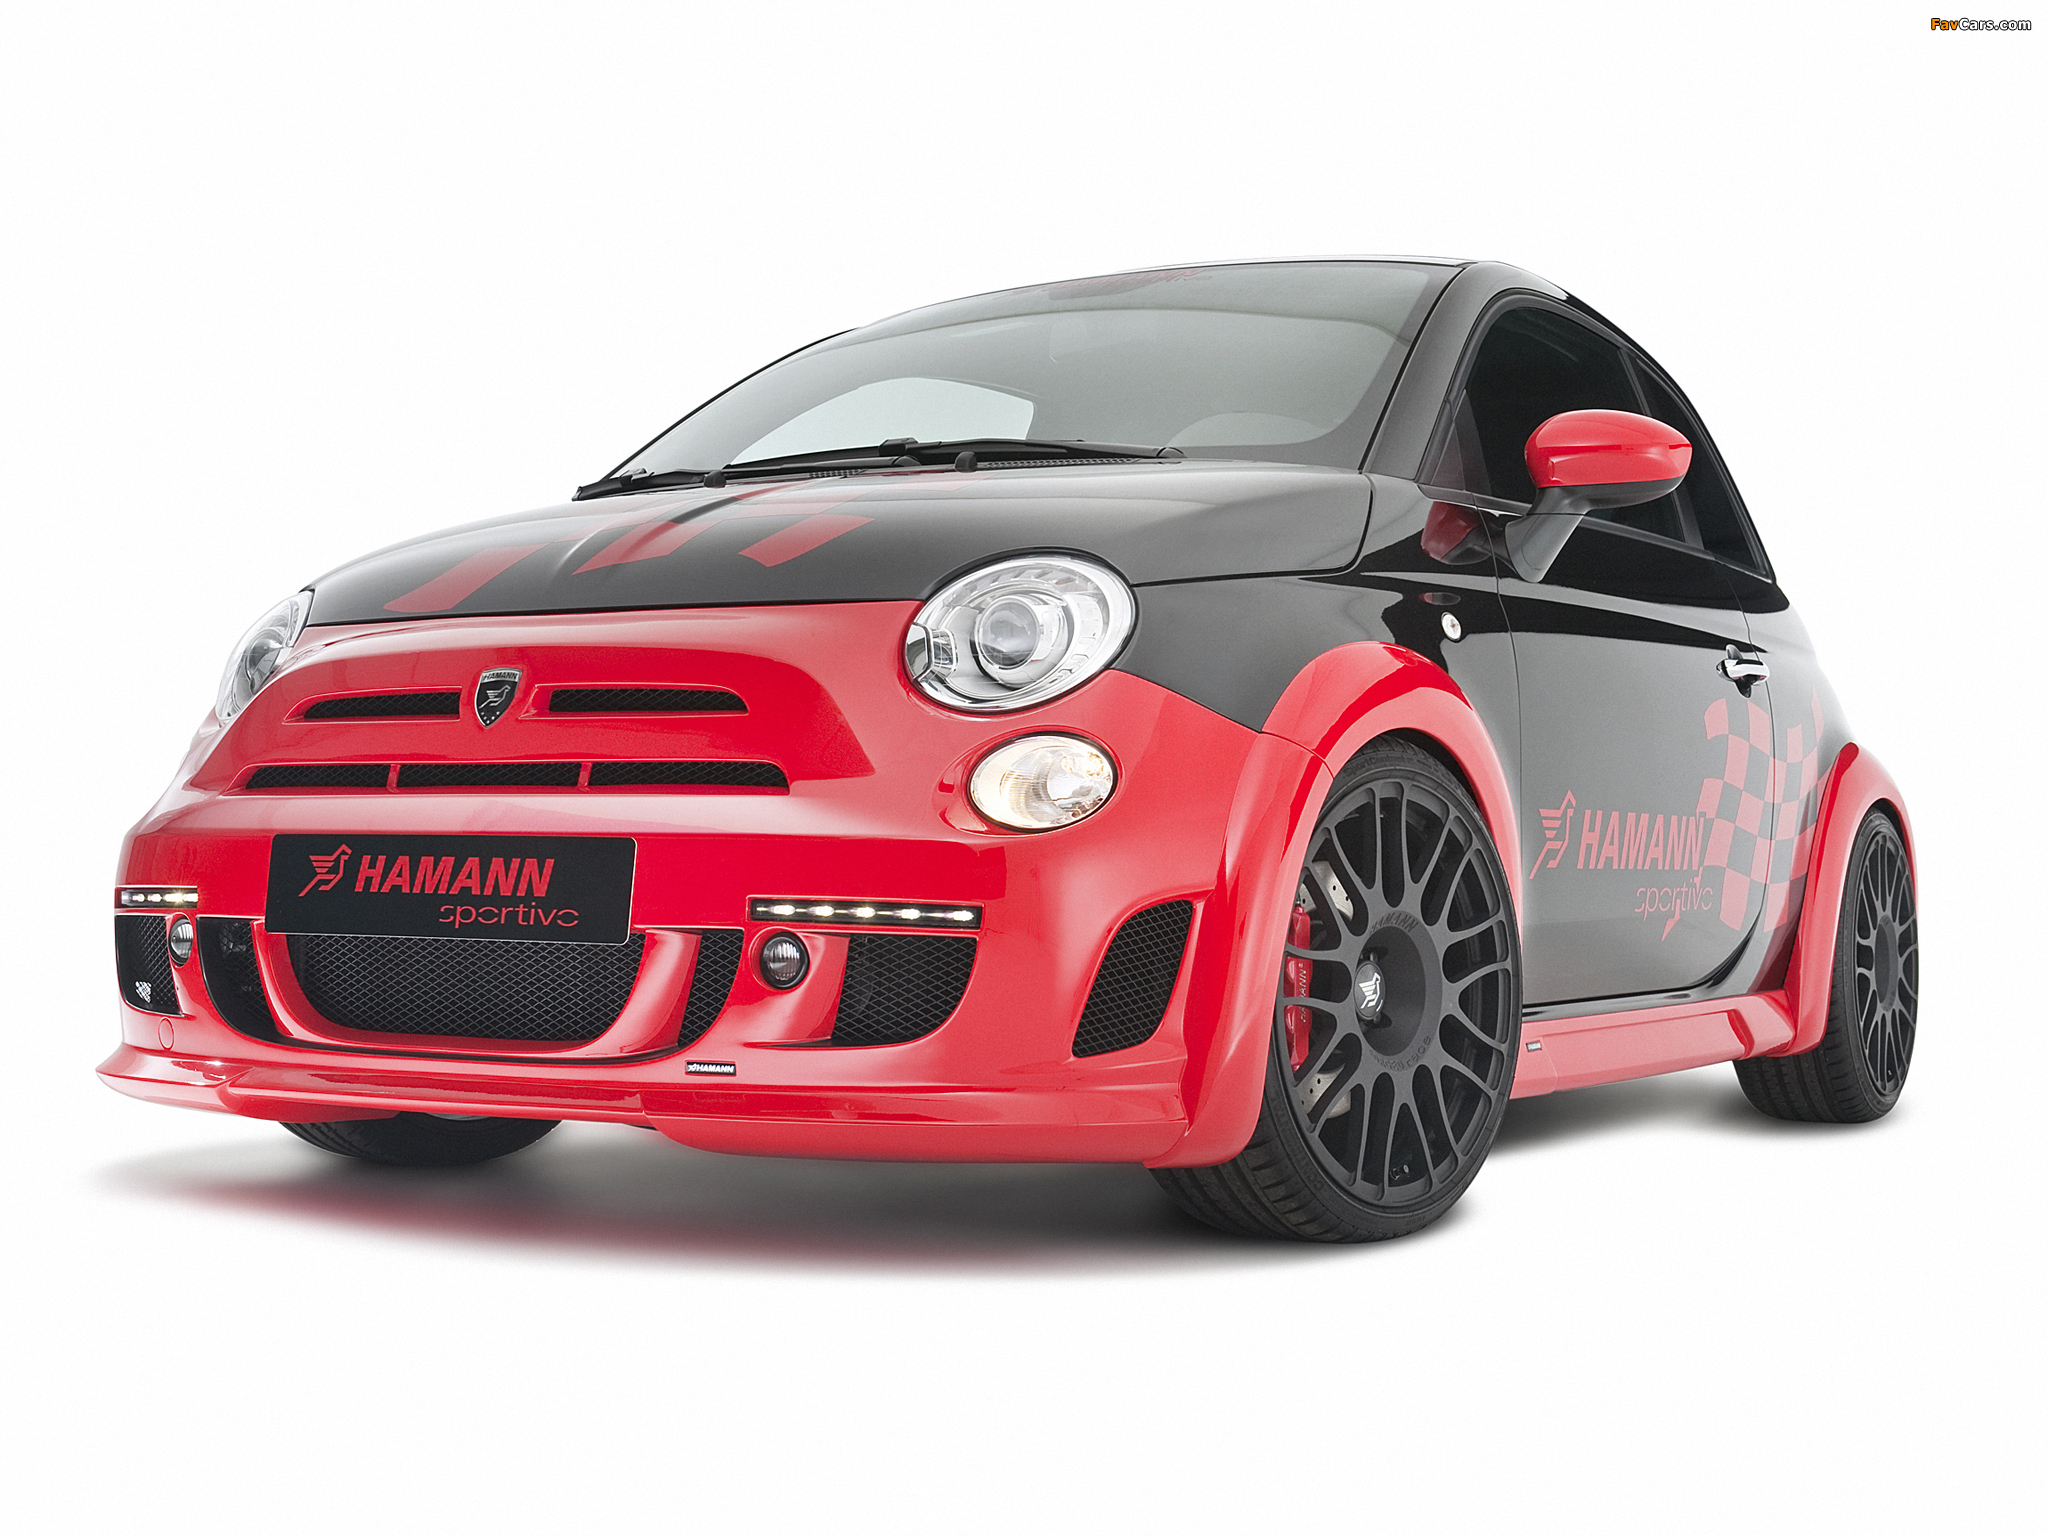 Pictures Of Hamann Abarth 500 Esseesse 2010 2048x1536